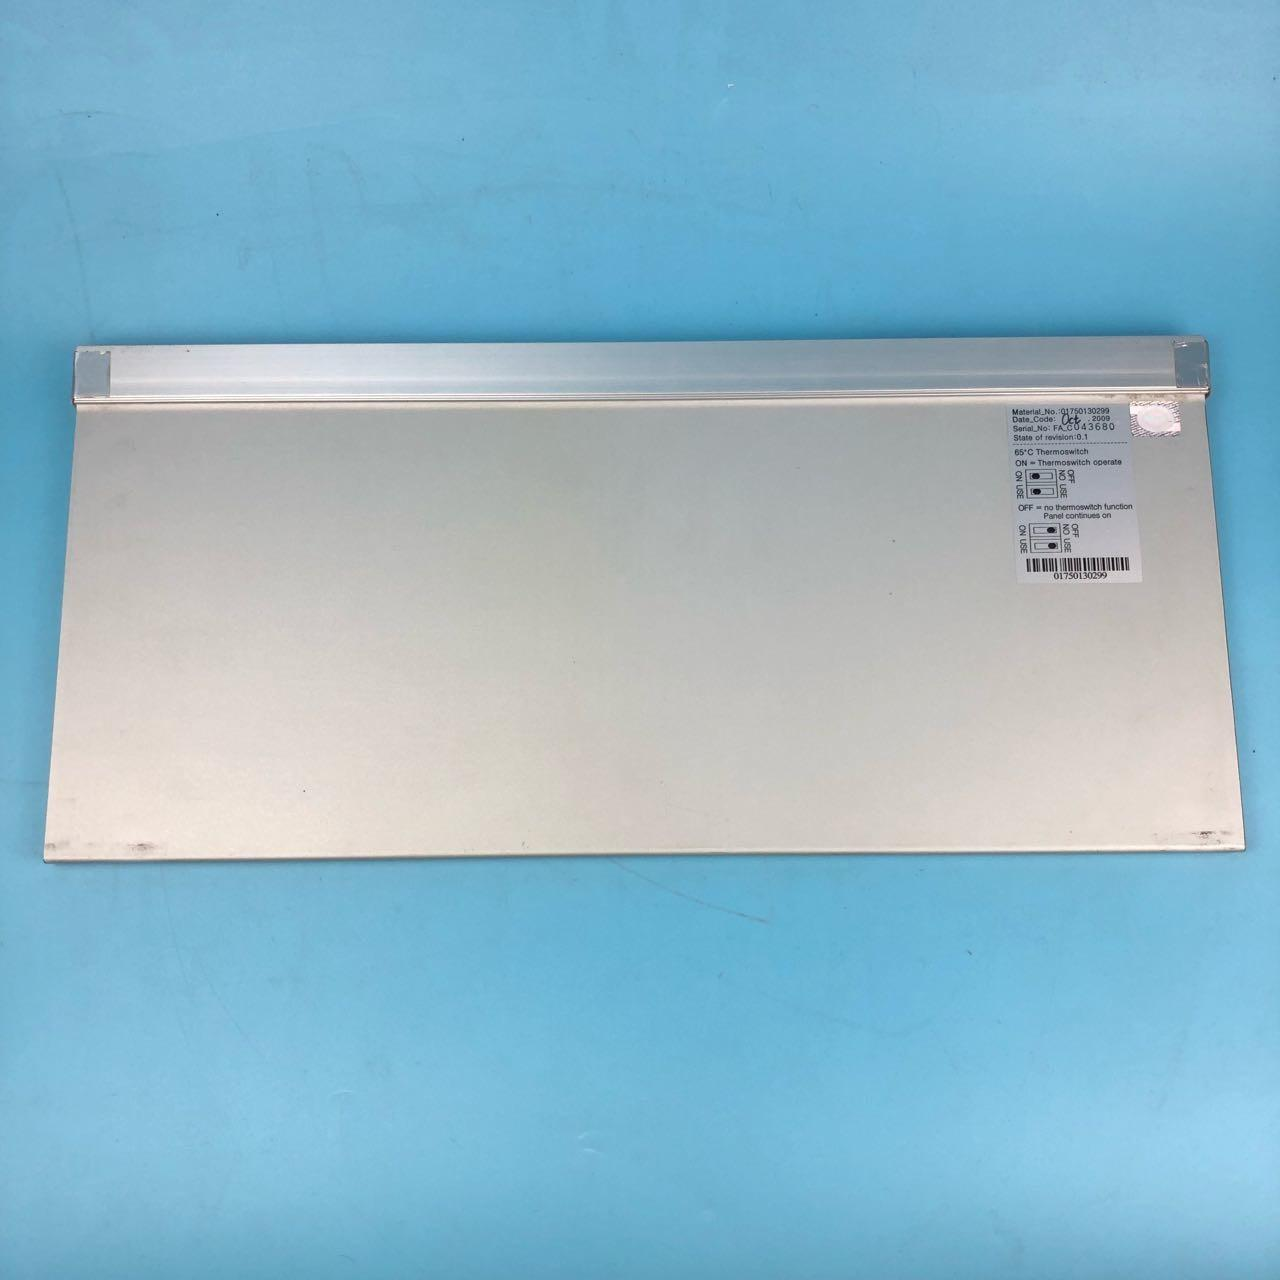 China Light Panel 1750130299 Wincor Nixdorf ATM Parts Original New Condition Mixed Material for sale